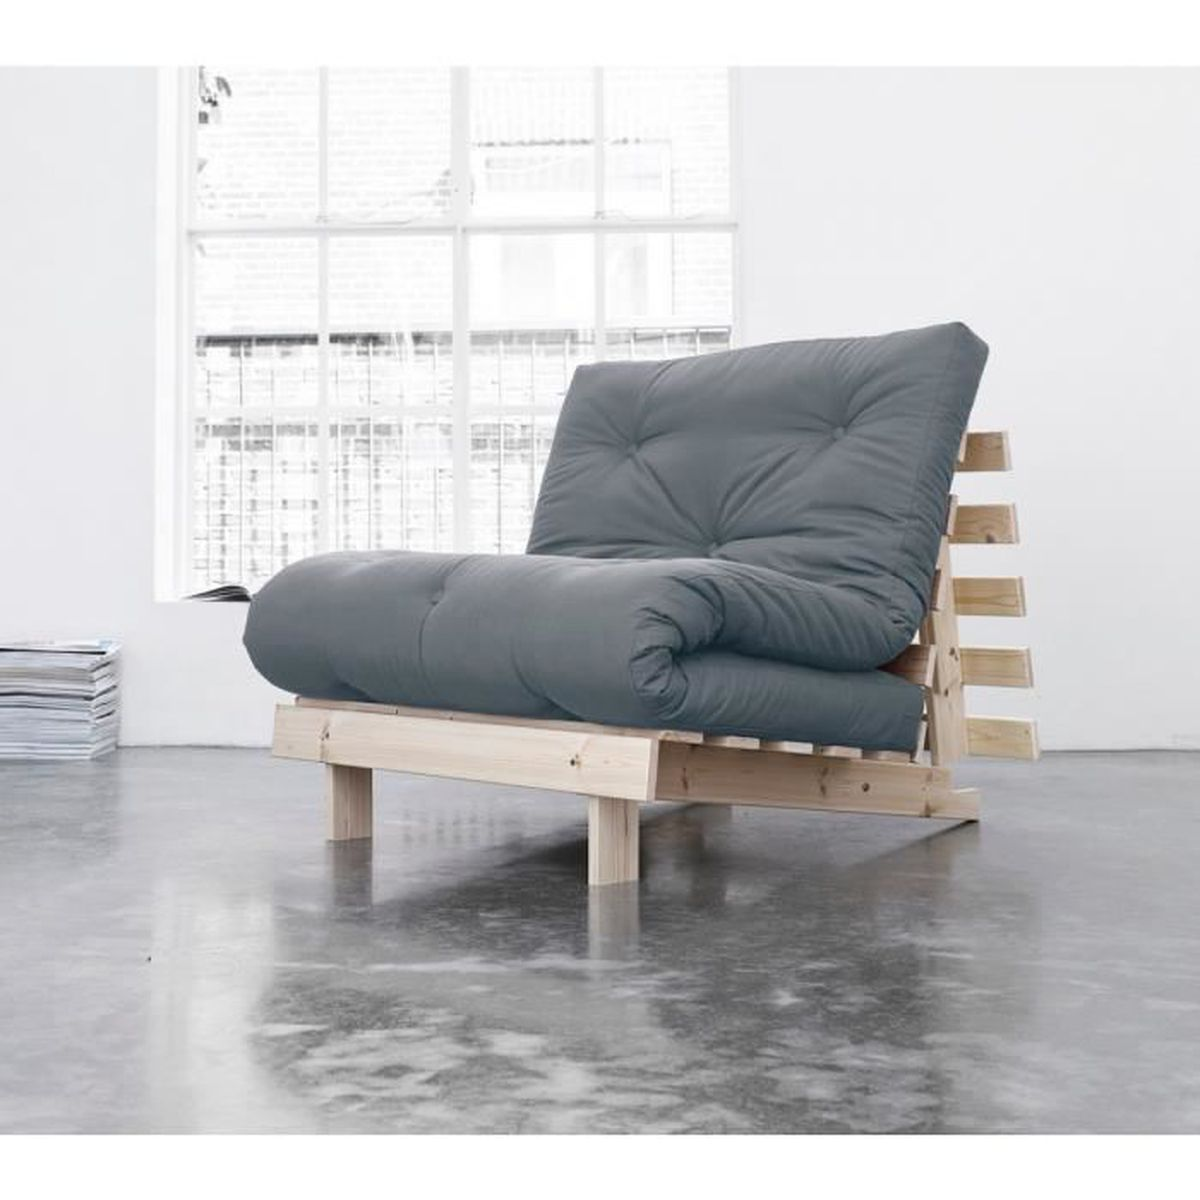 pack matelas futon gris coton structure en bois naturel 140x200 achat vente futon cdiscount. Black Bedroom Furniture Sets. Home Design Ideas